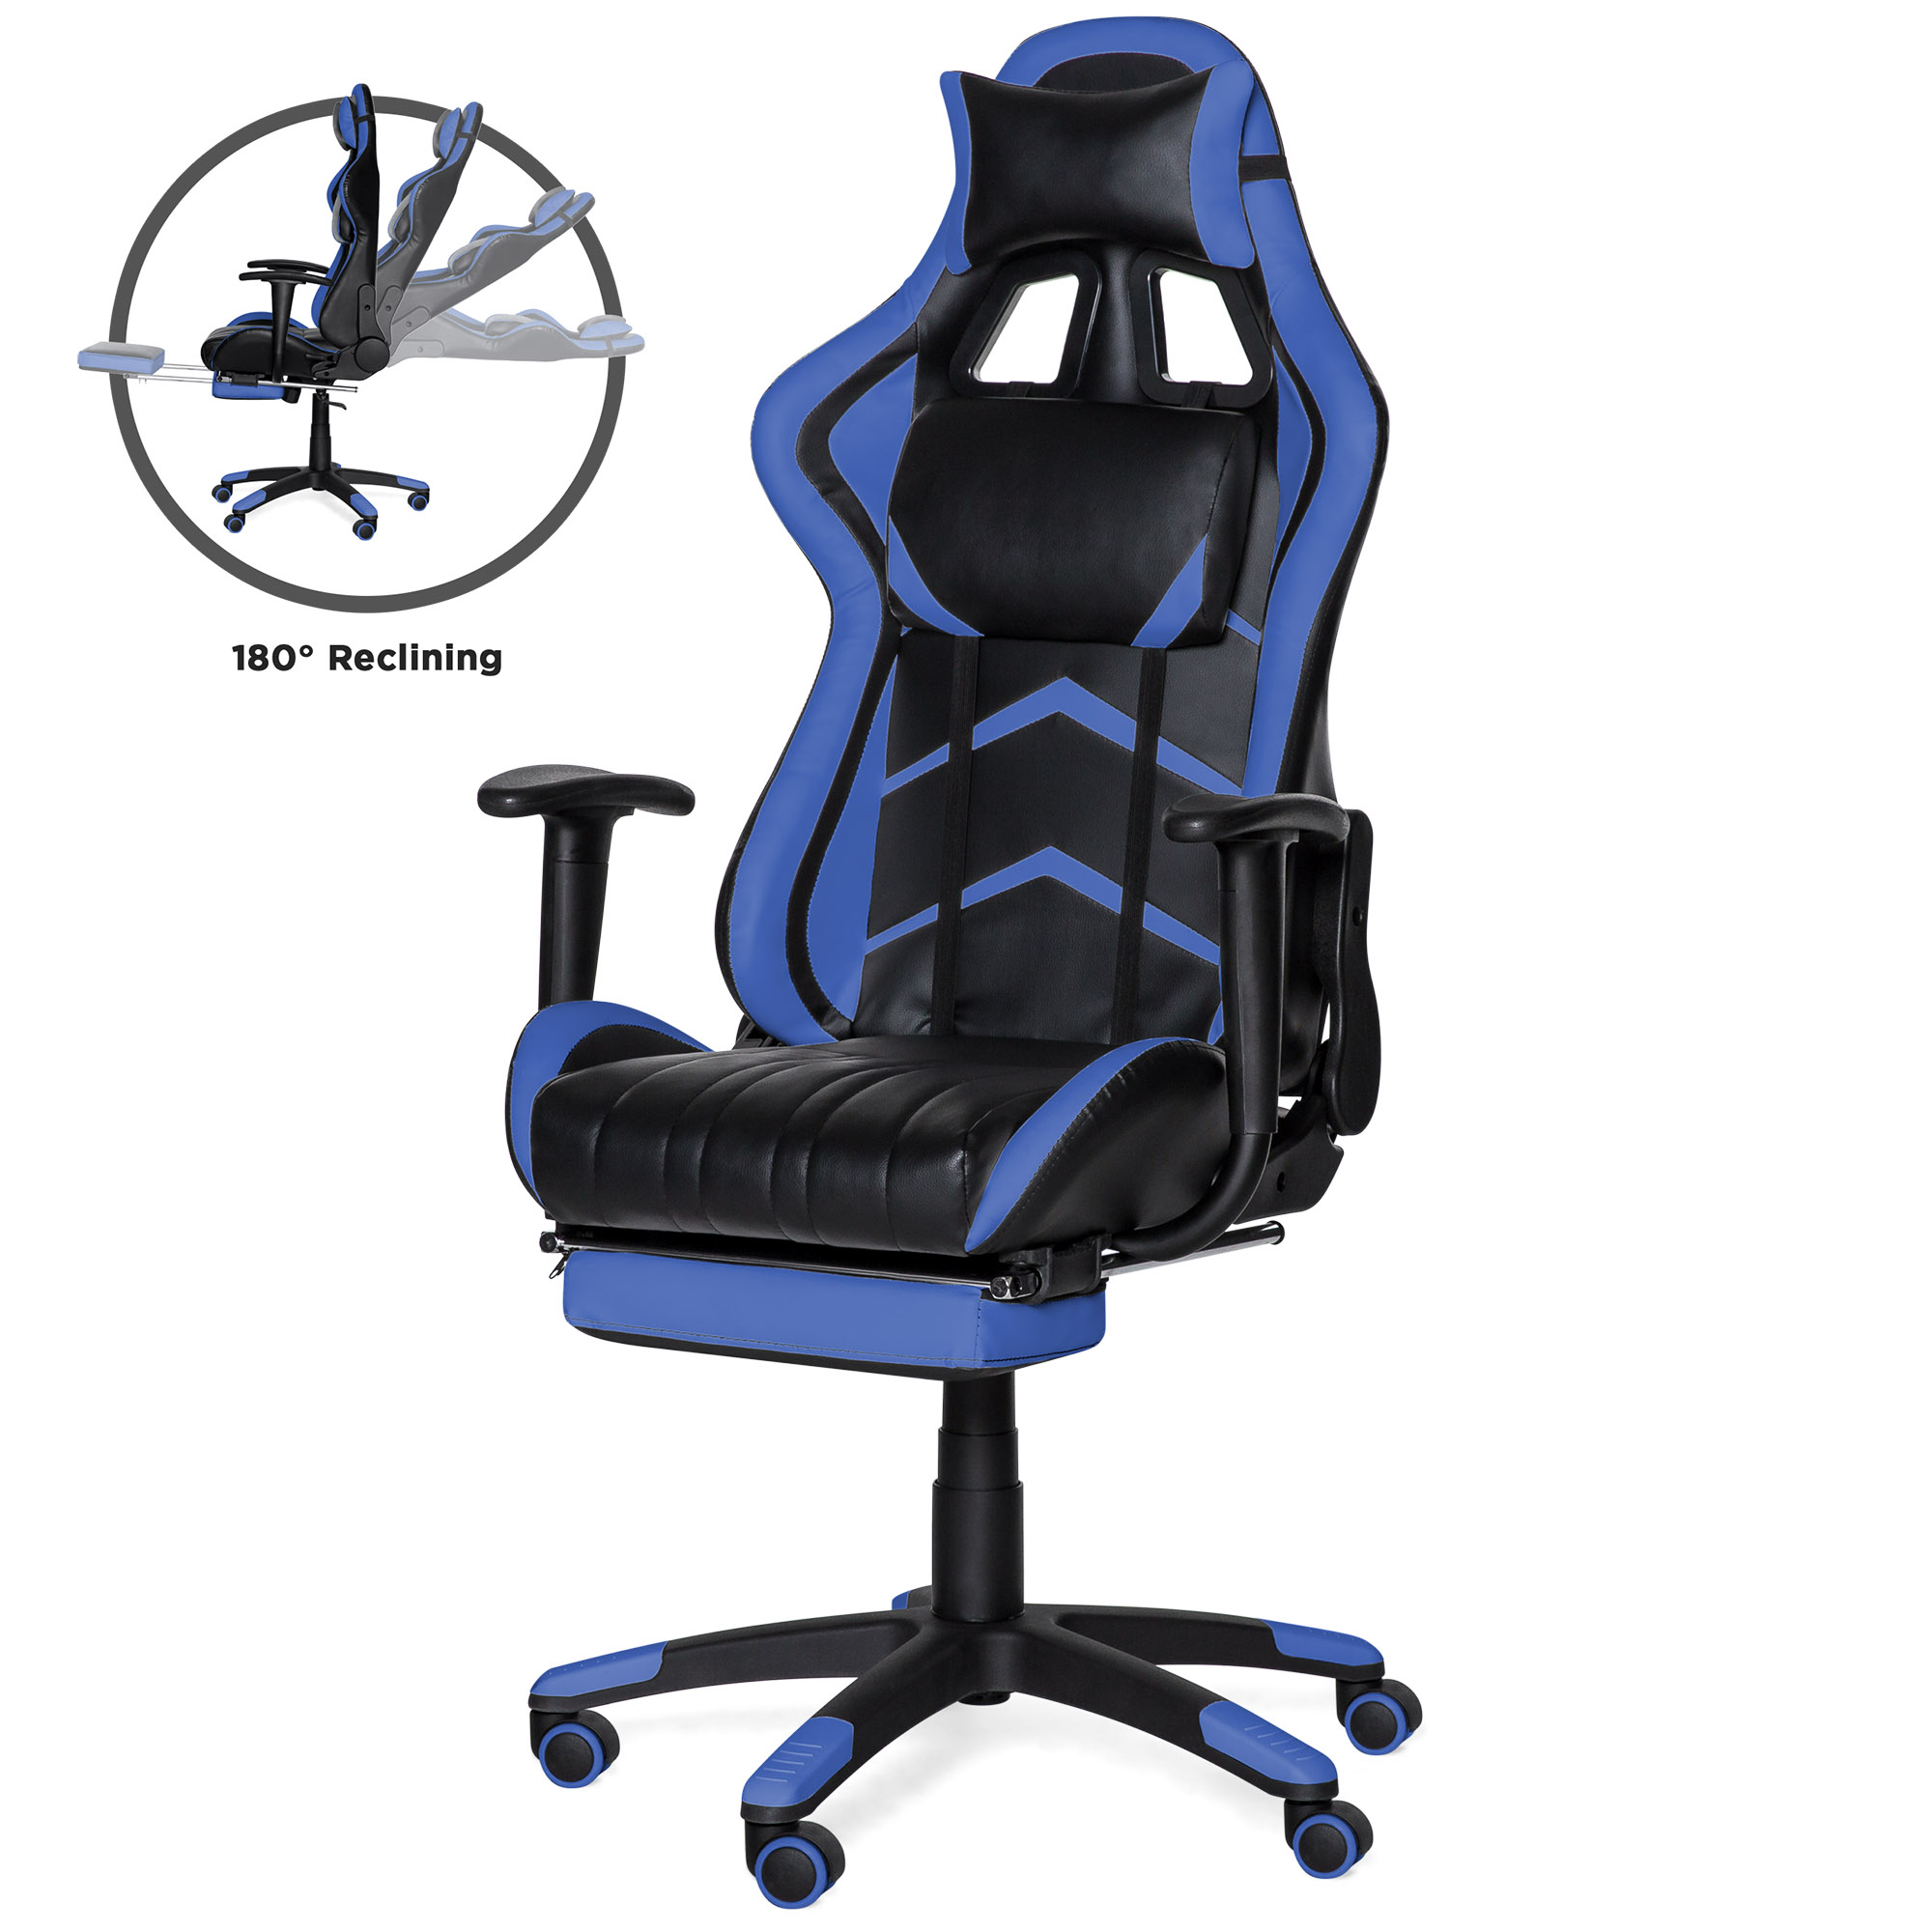 gaming chair best egg garden cover choice products ergonomic high back executive office computer racing w 360